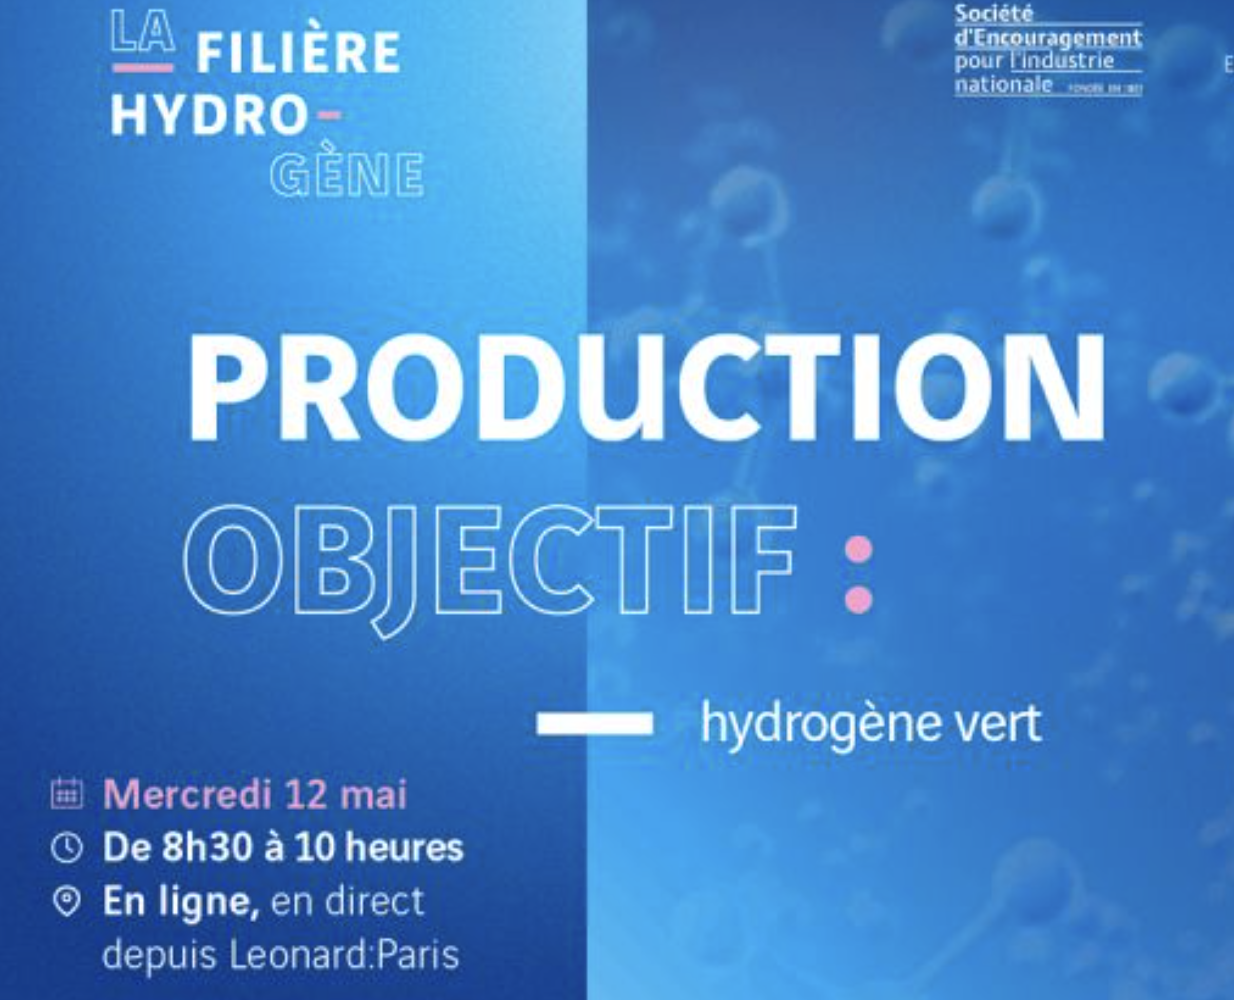 [Conference – Report] Towards a decarbonized production of hydrogen